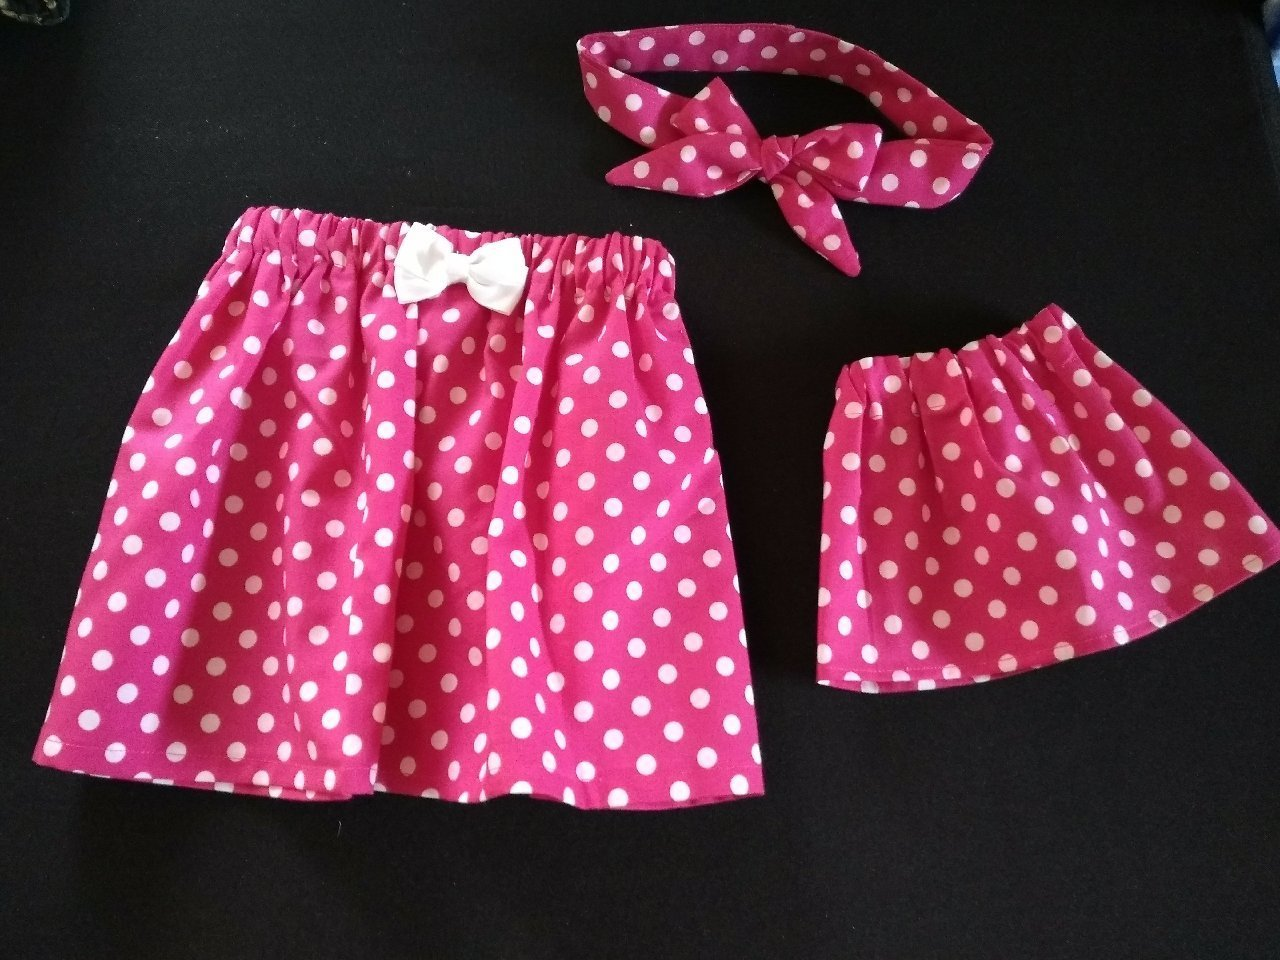 Hot Pink Polka Dot Girls Skirt with Matching Headband & Baby Doll Skirt